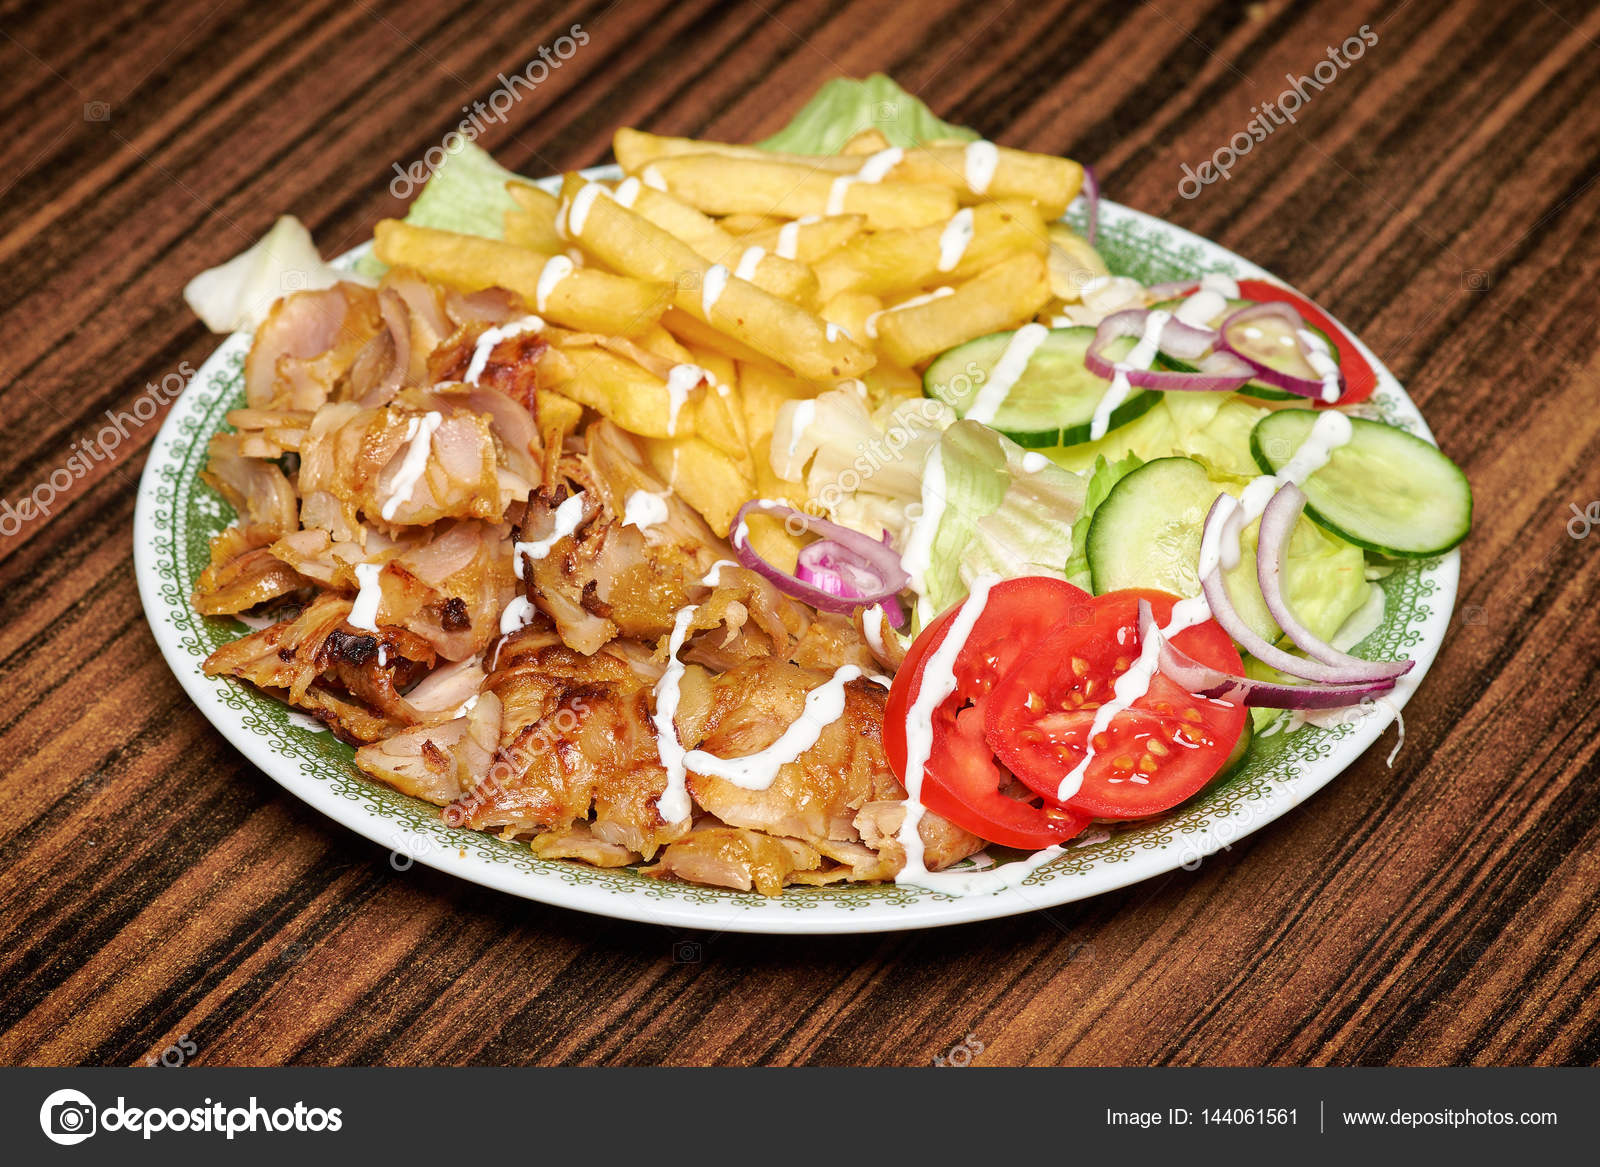 Gyros Greek Plate Similar With Turkish Doner Kebab Stock Photo Image By C Steevy84 144061561